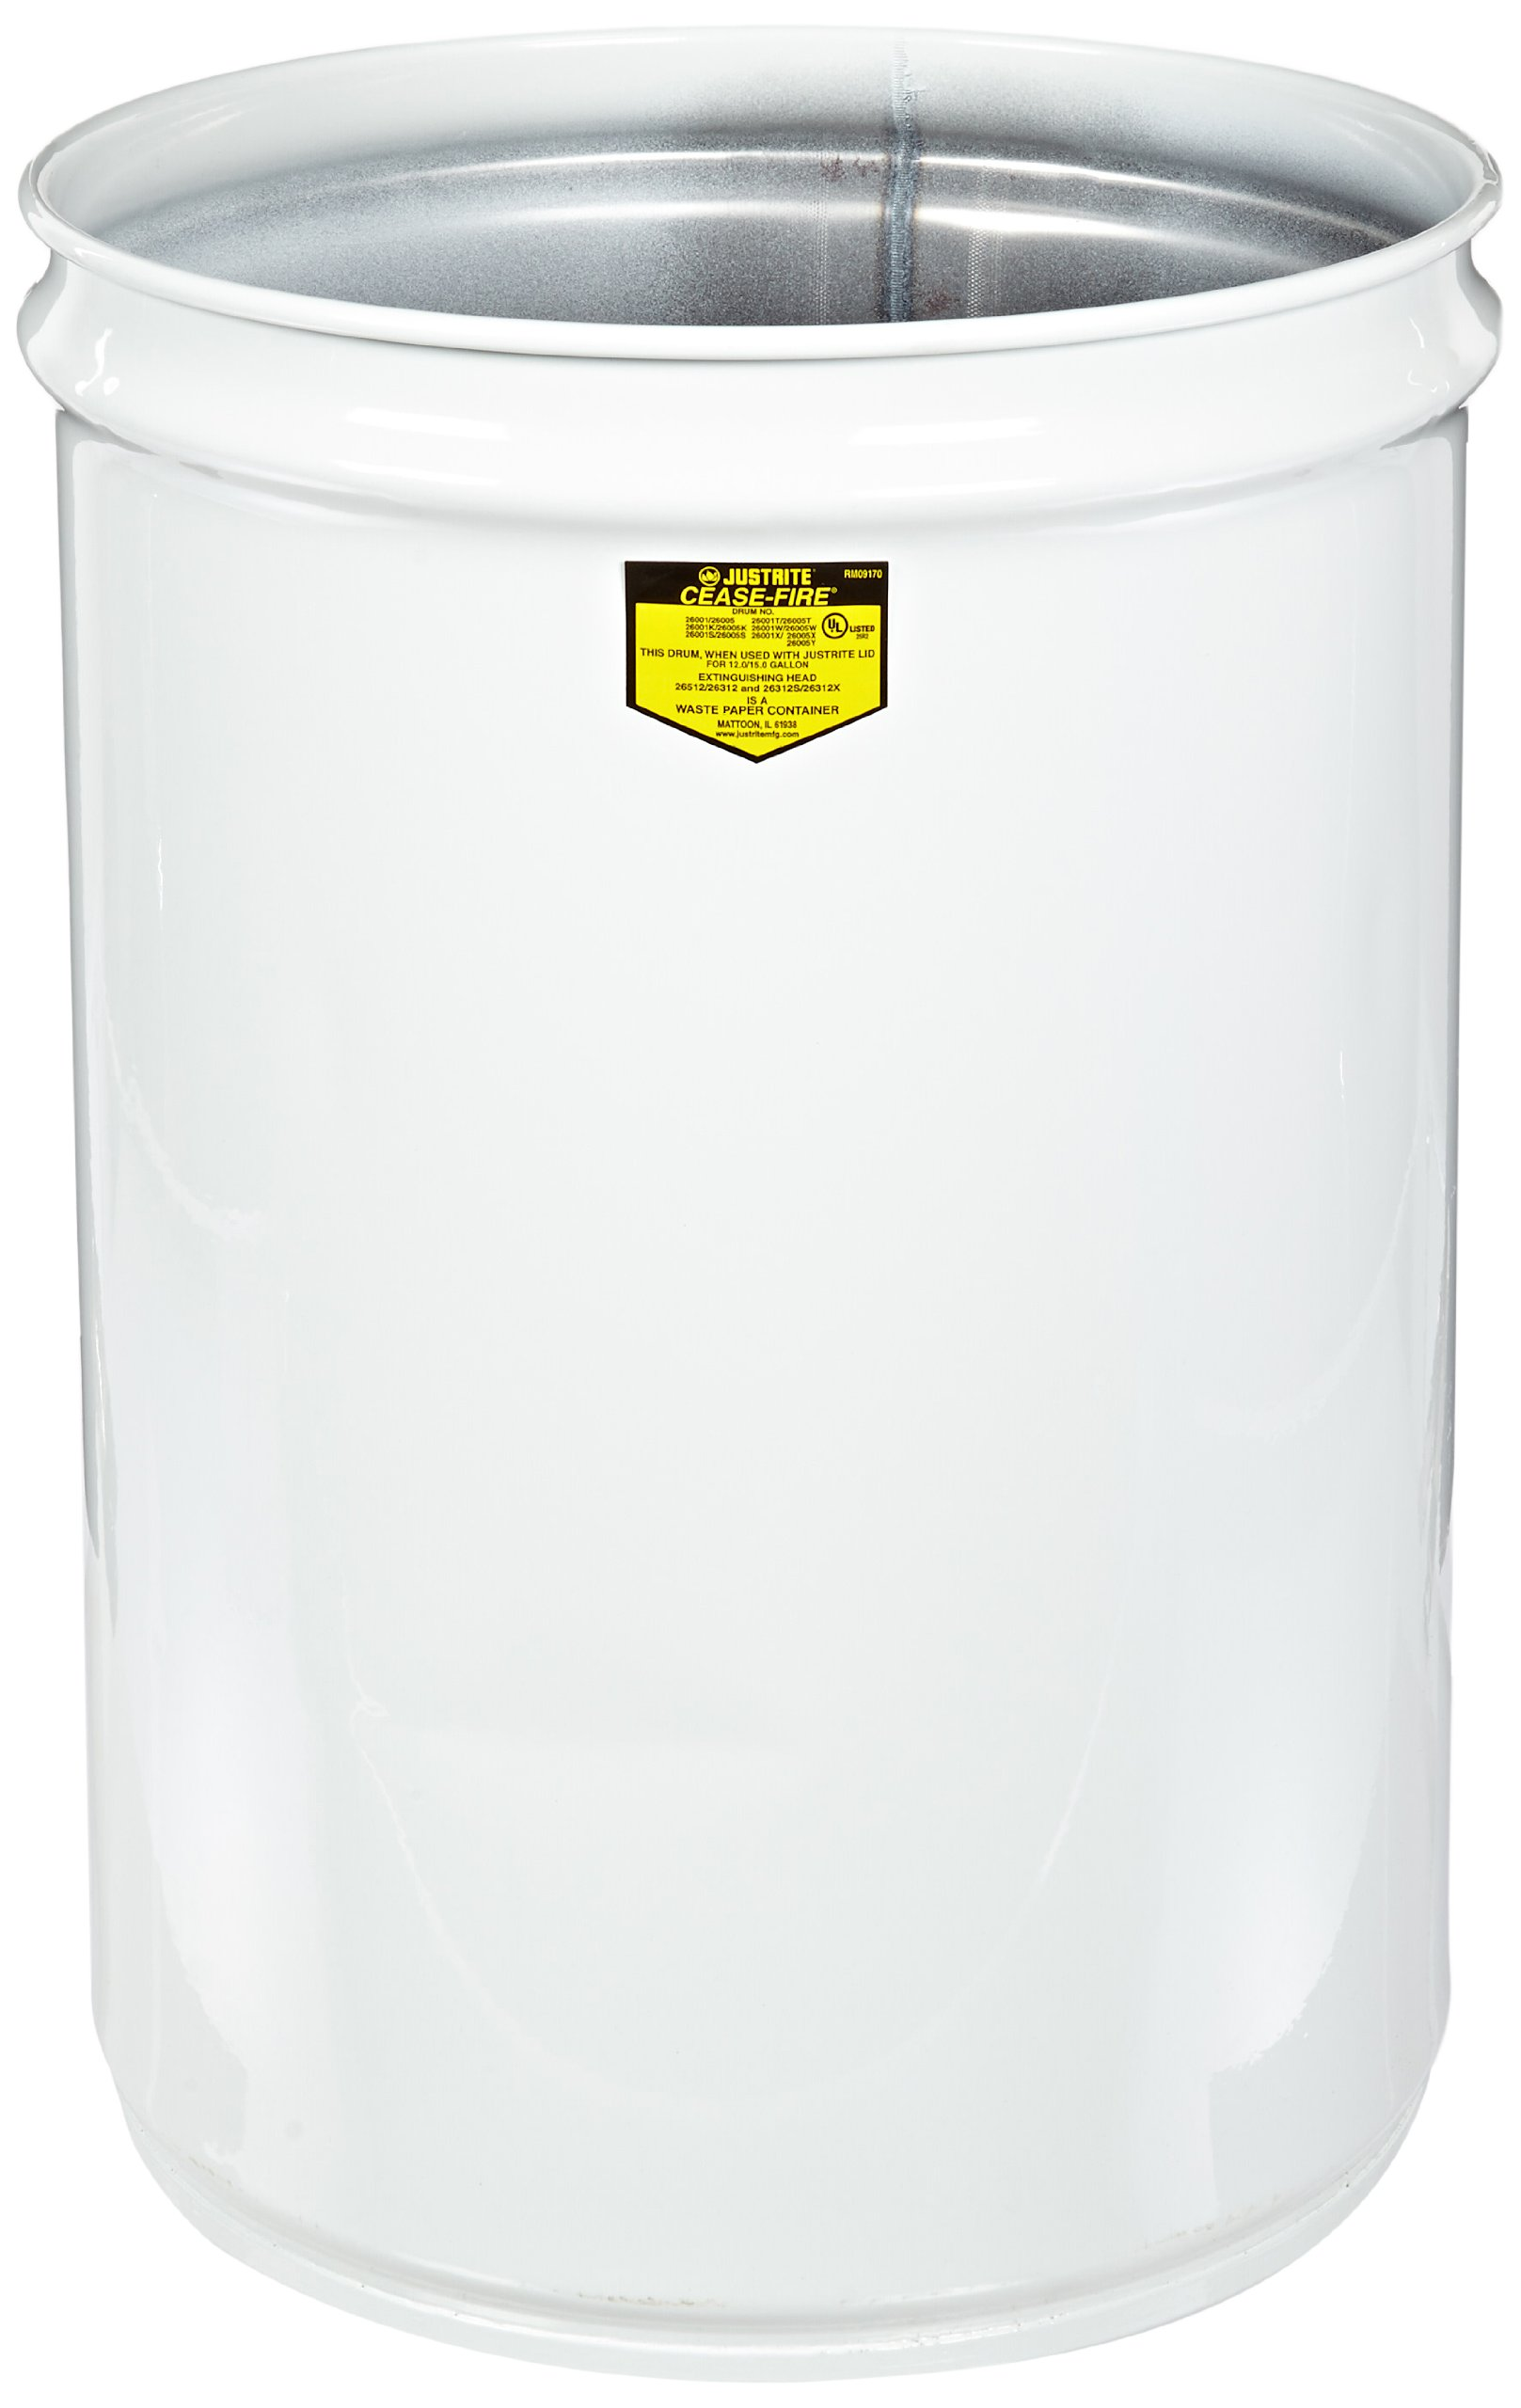 78e7ca4deead Cheap 20 Gallon Steel Drum, find 20 Gallon Steel Drum deals on line ...